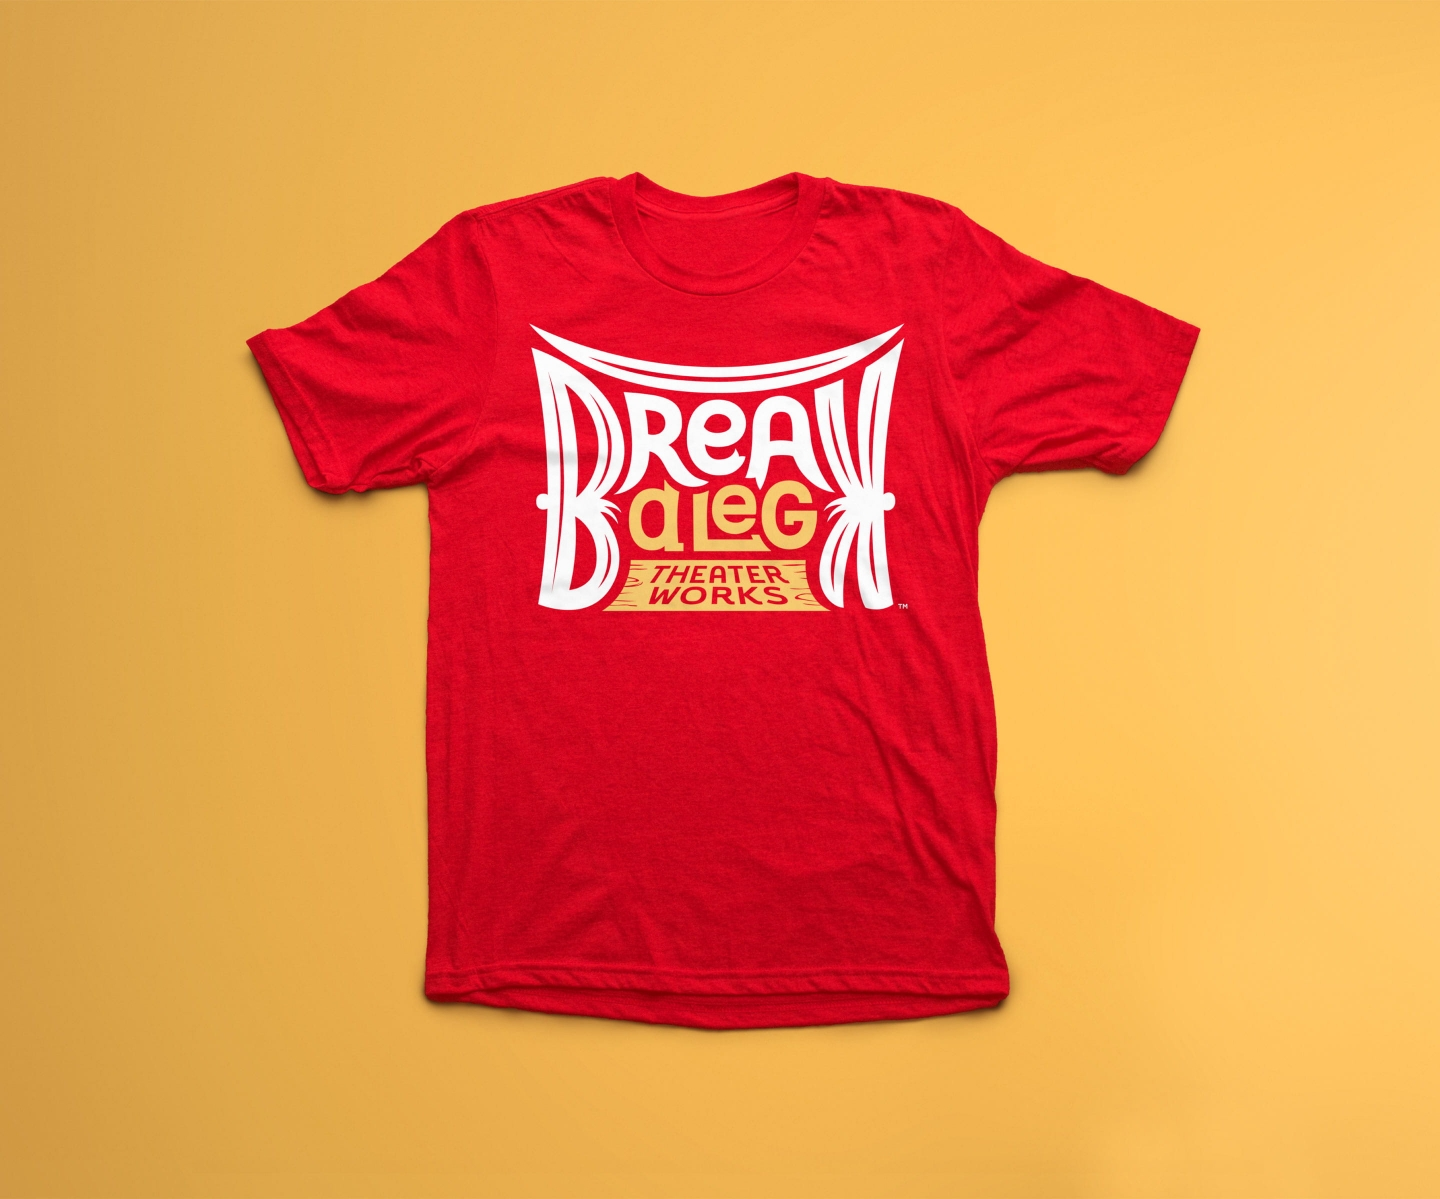 Break A Leg Theater logo on t-shirt with yellow background